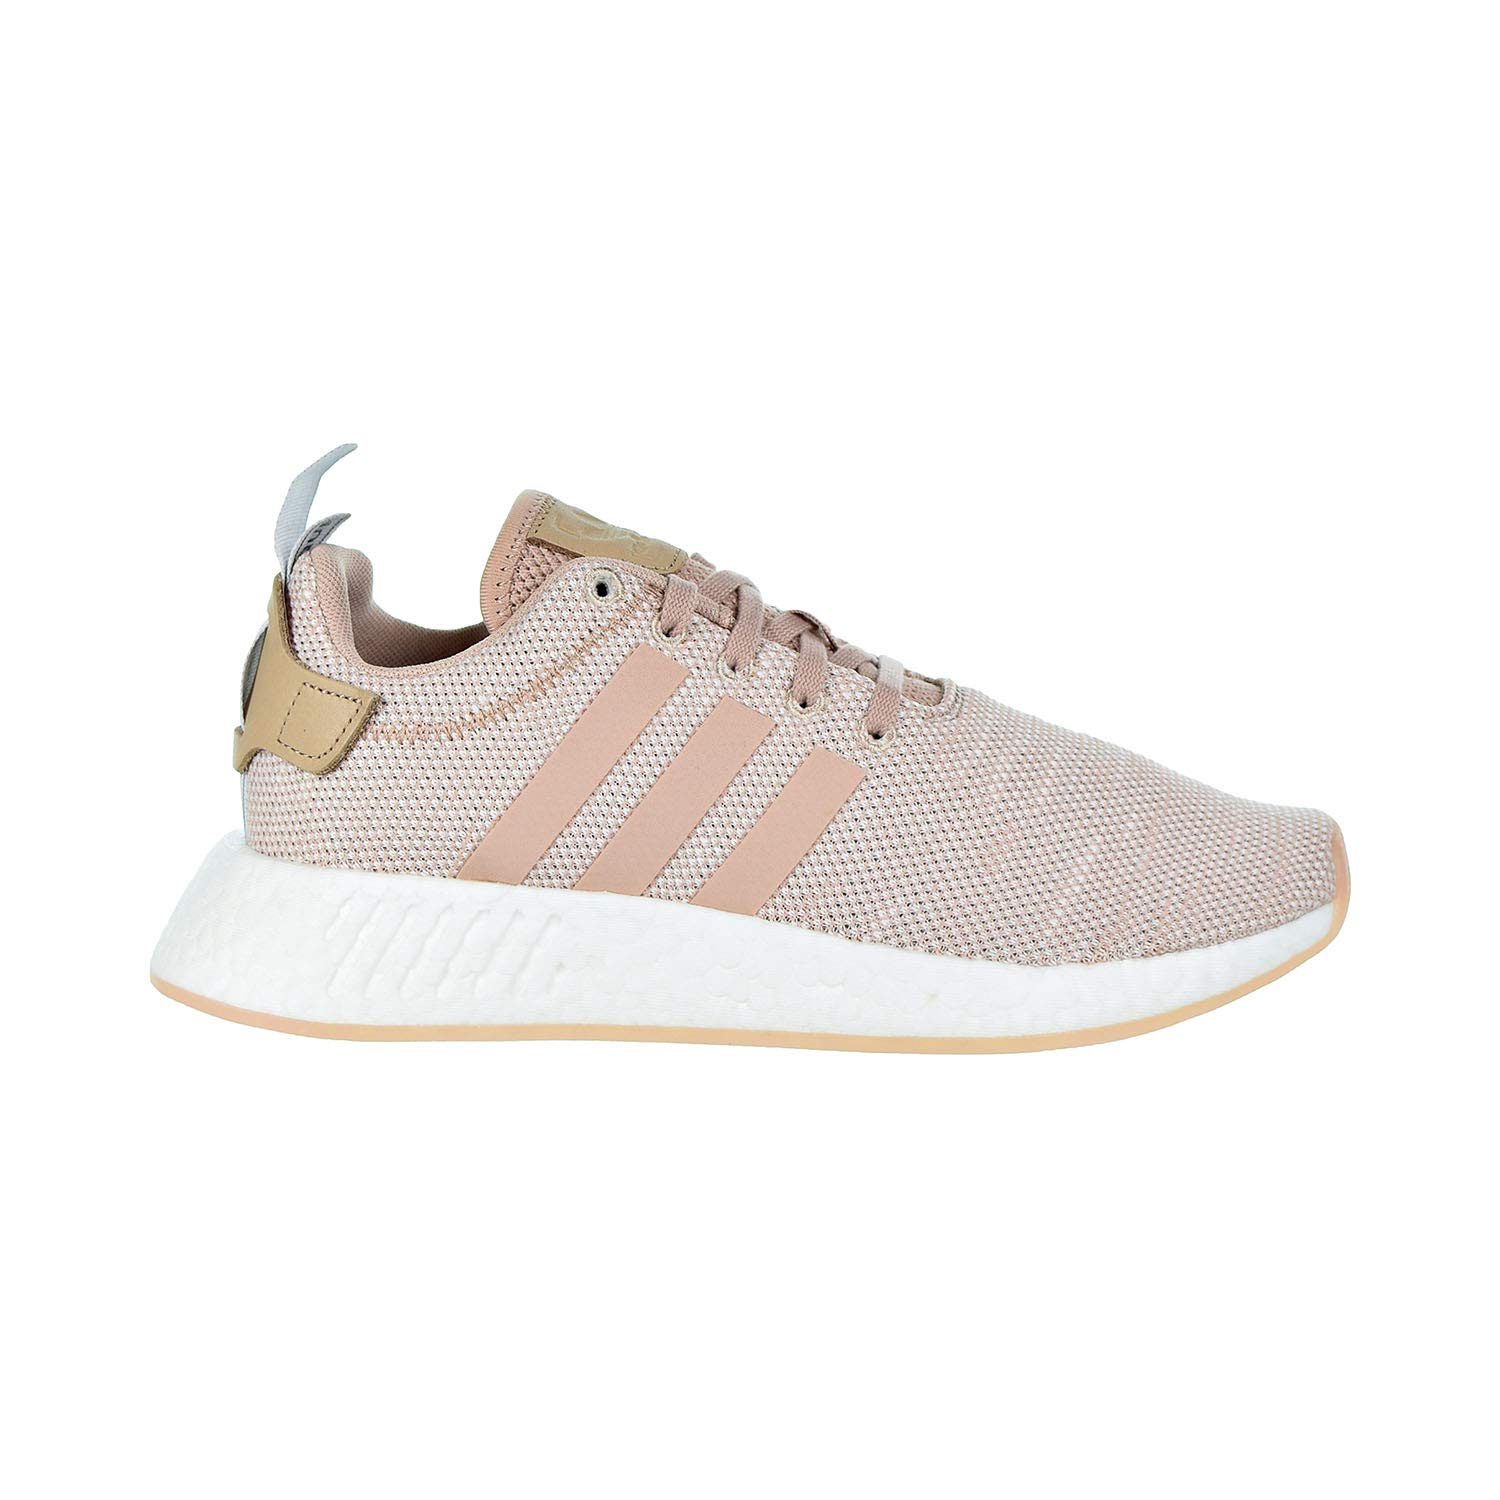 adidas Womens NMD_R2 Shoes,